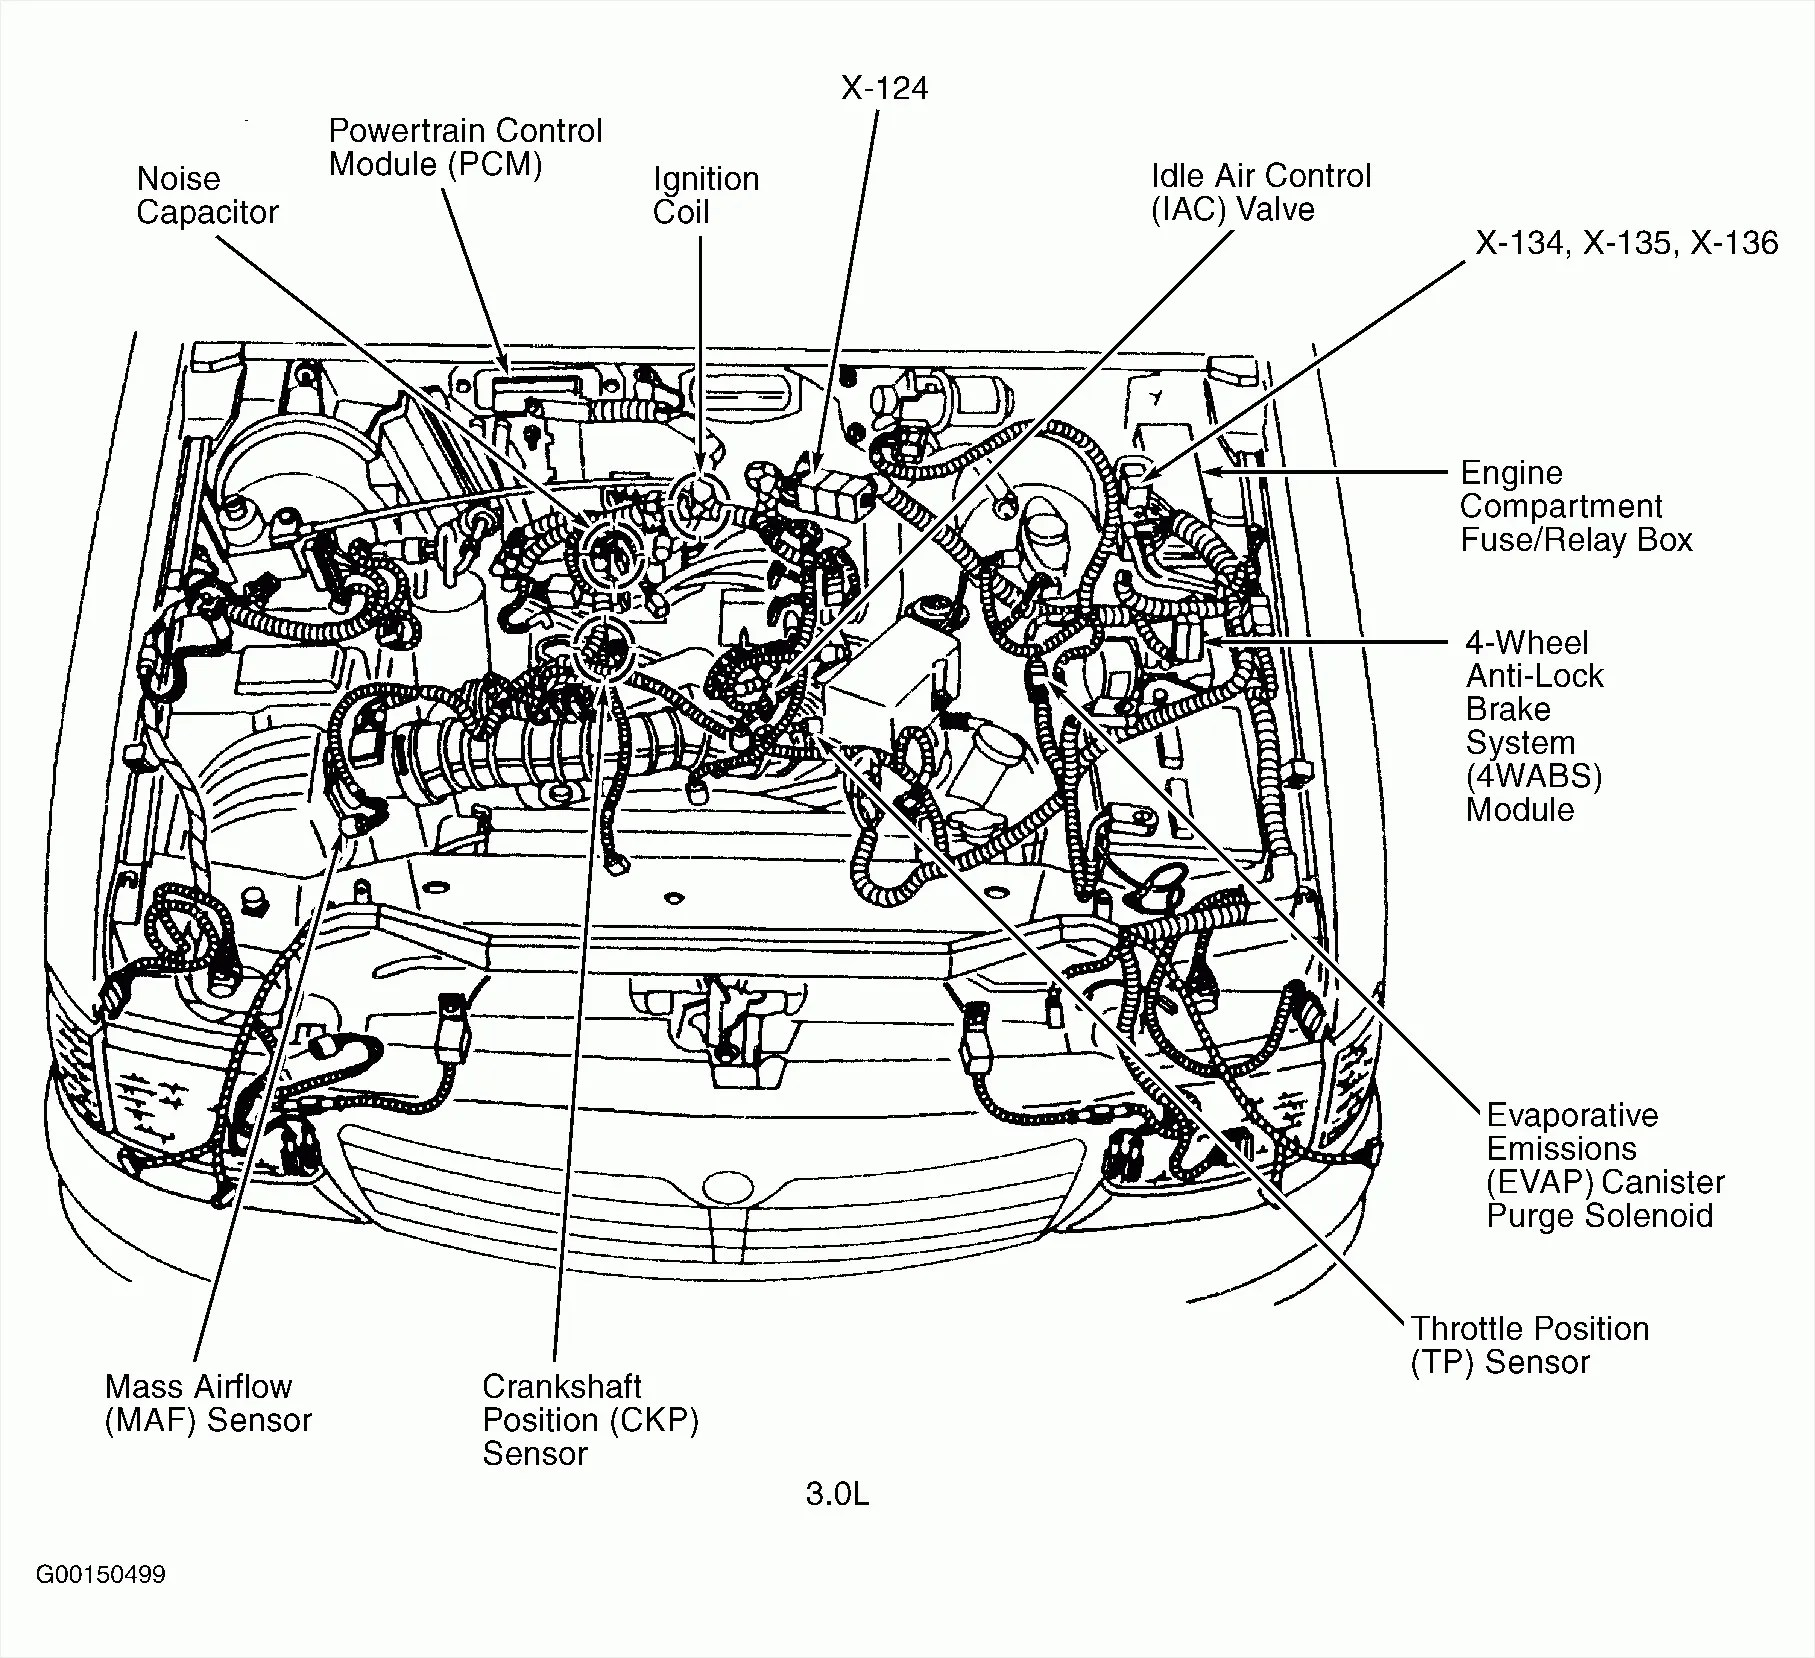 hight resolution of diagram of jeep 3 8l v6 engine wiring diagram detailed chrysler 2005 town and country 3 3v6 location of the transmission input sensor jeep 3 8l engine